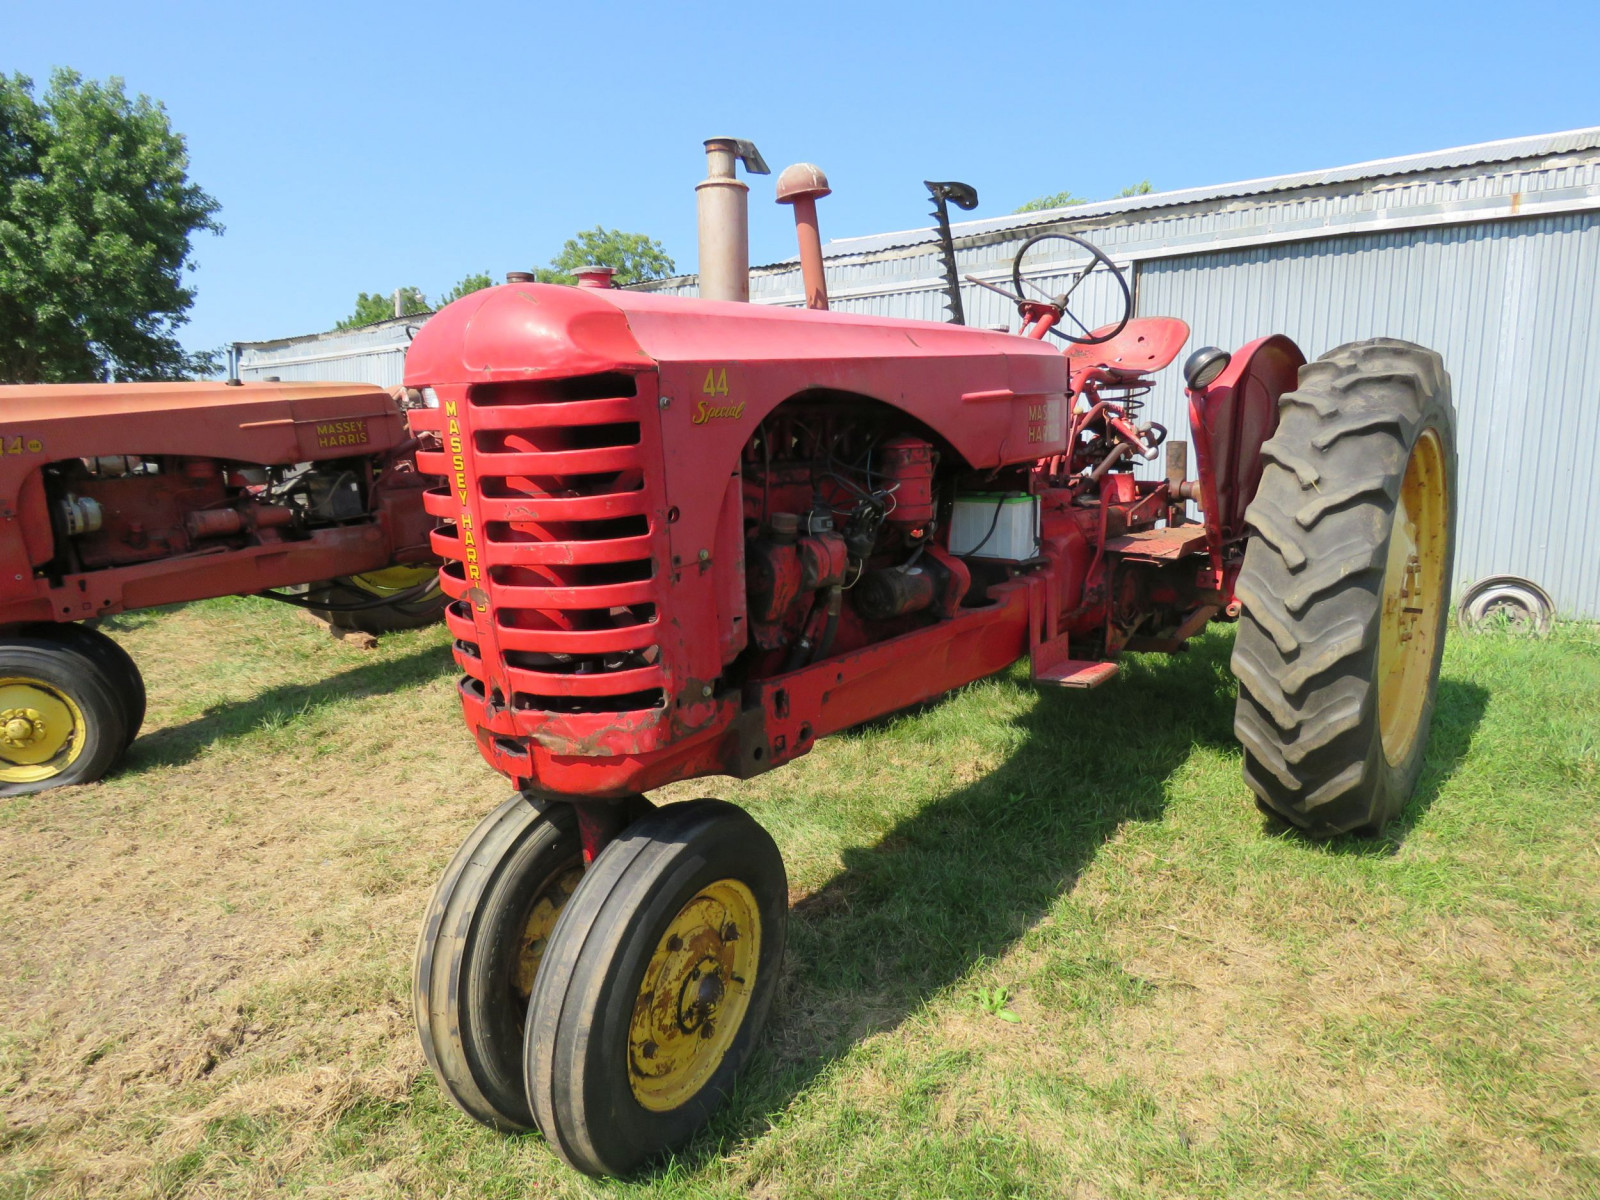 1955 Massey Harris 44 Special Tractor - Image 8